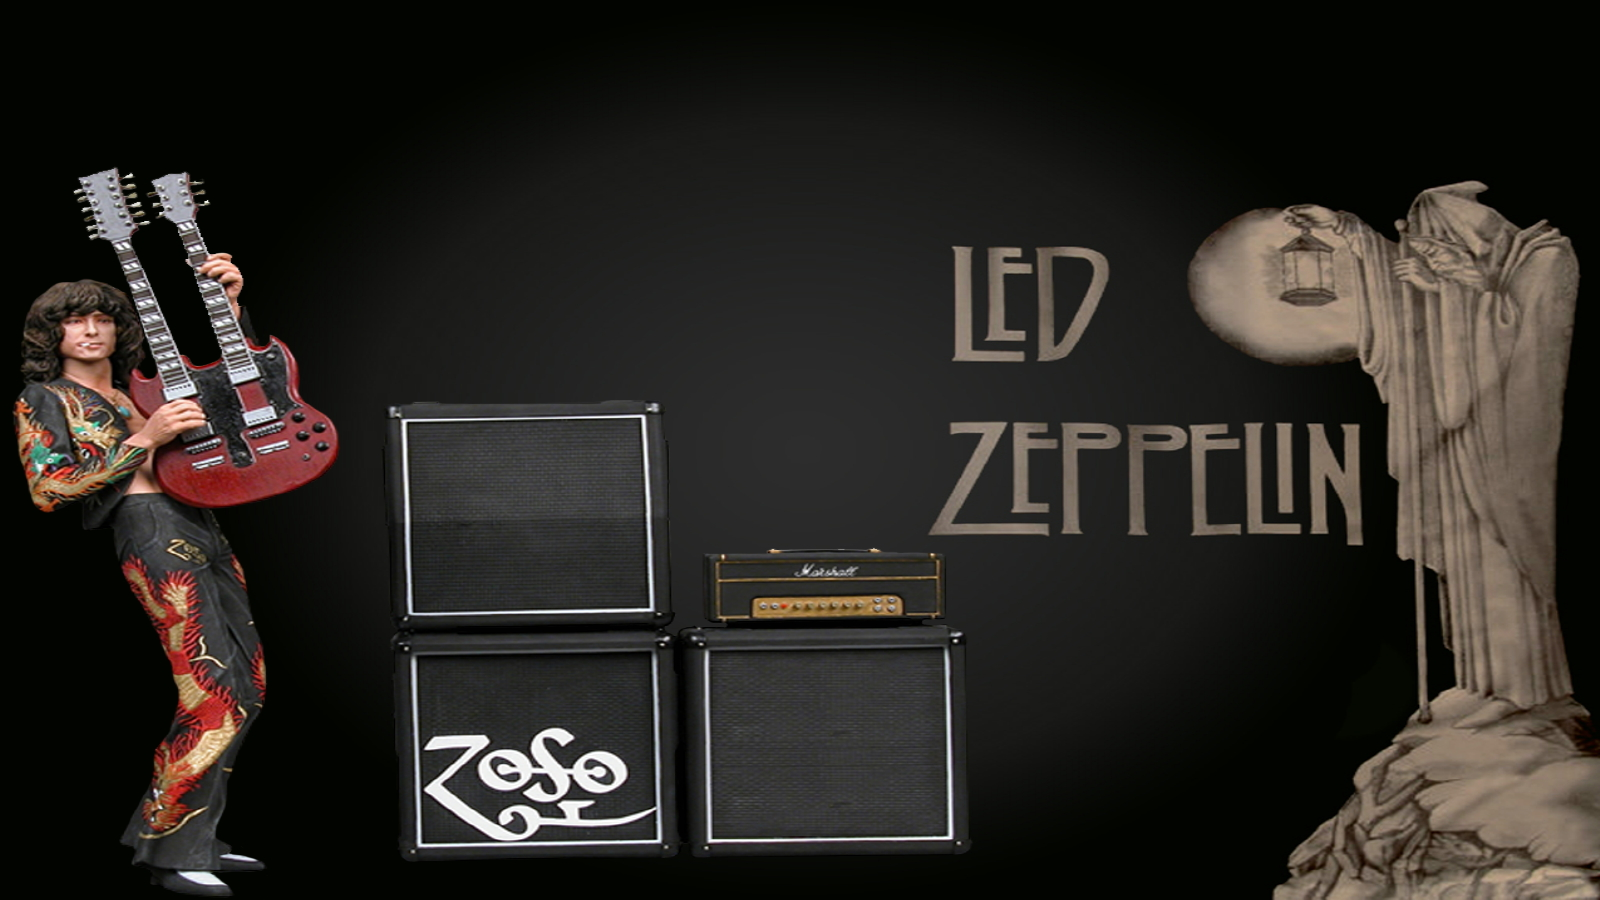 Led Zeppelin Wallpaper And Background Image